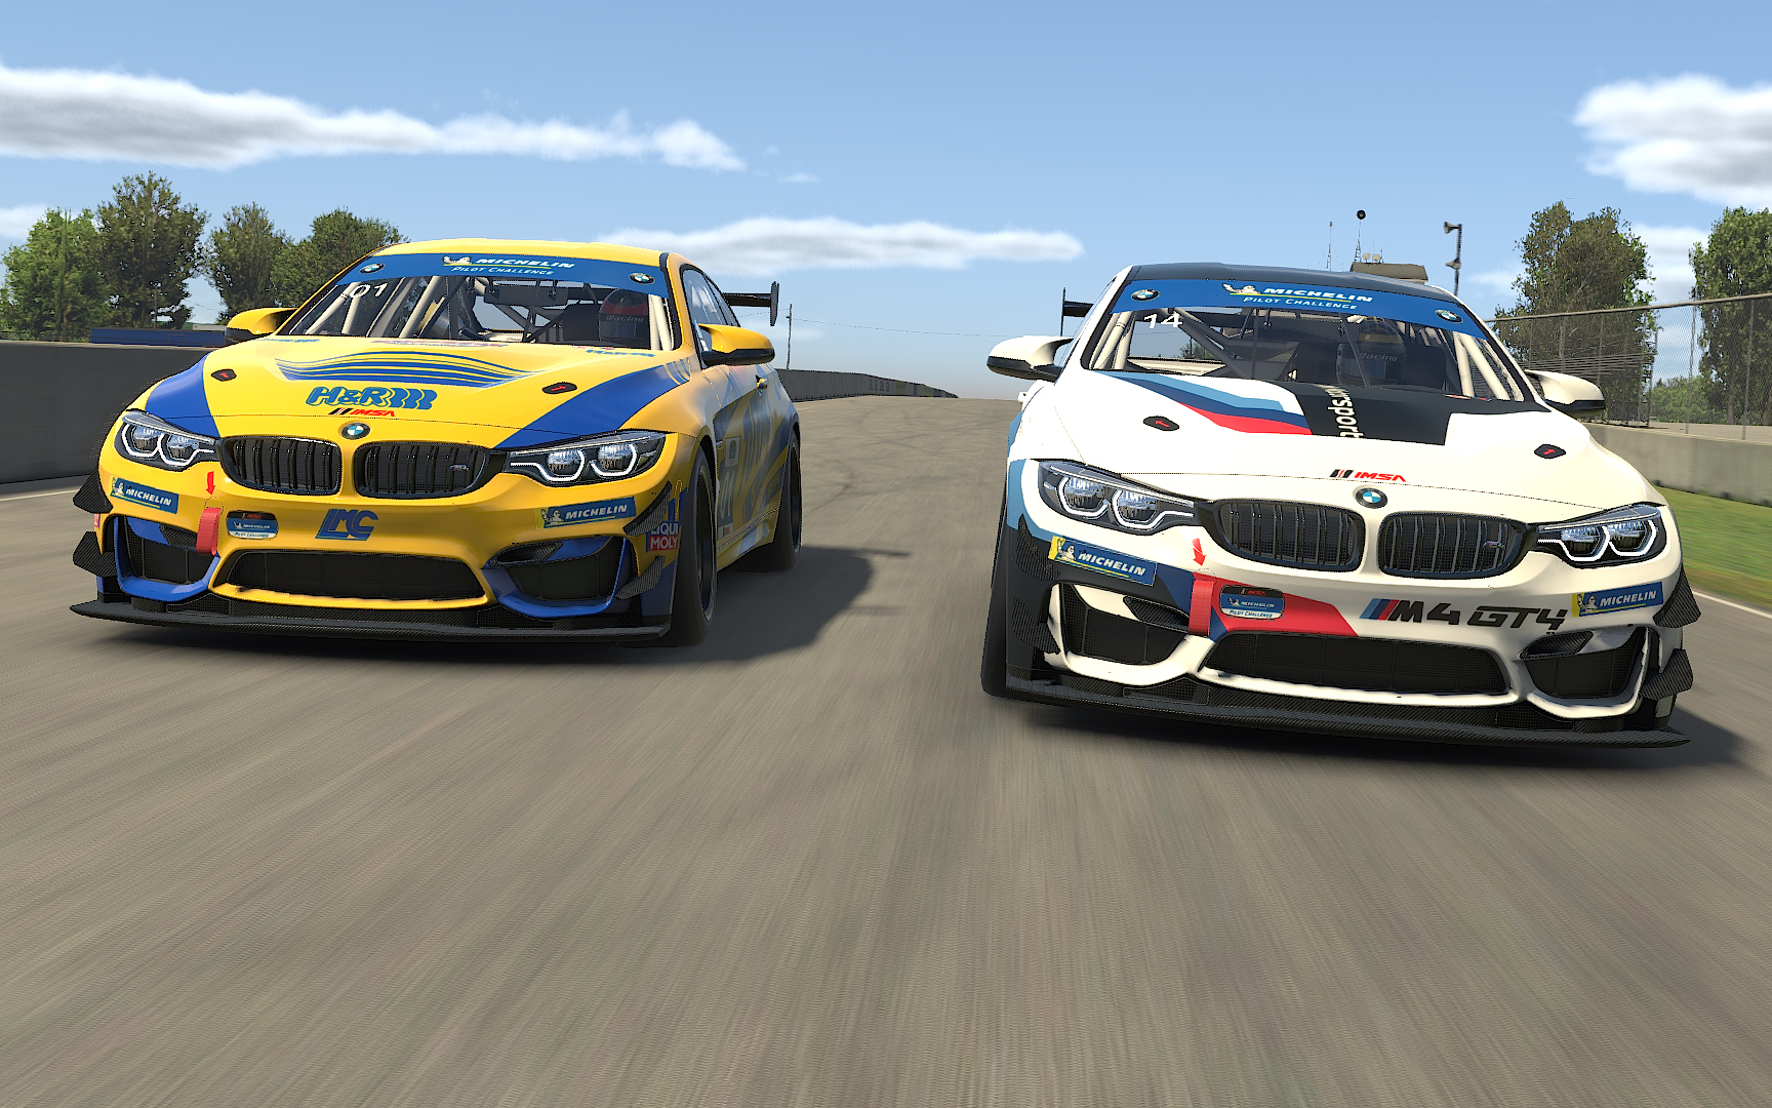 mid Groß-Gerau - Originalgetreu: die virtuellen Sportwagen BMW M4 GT4 iRacing in Aktion. BMW